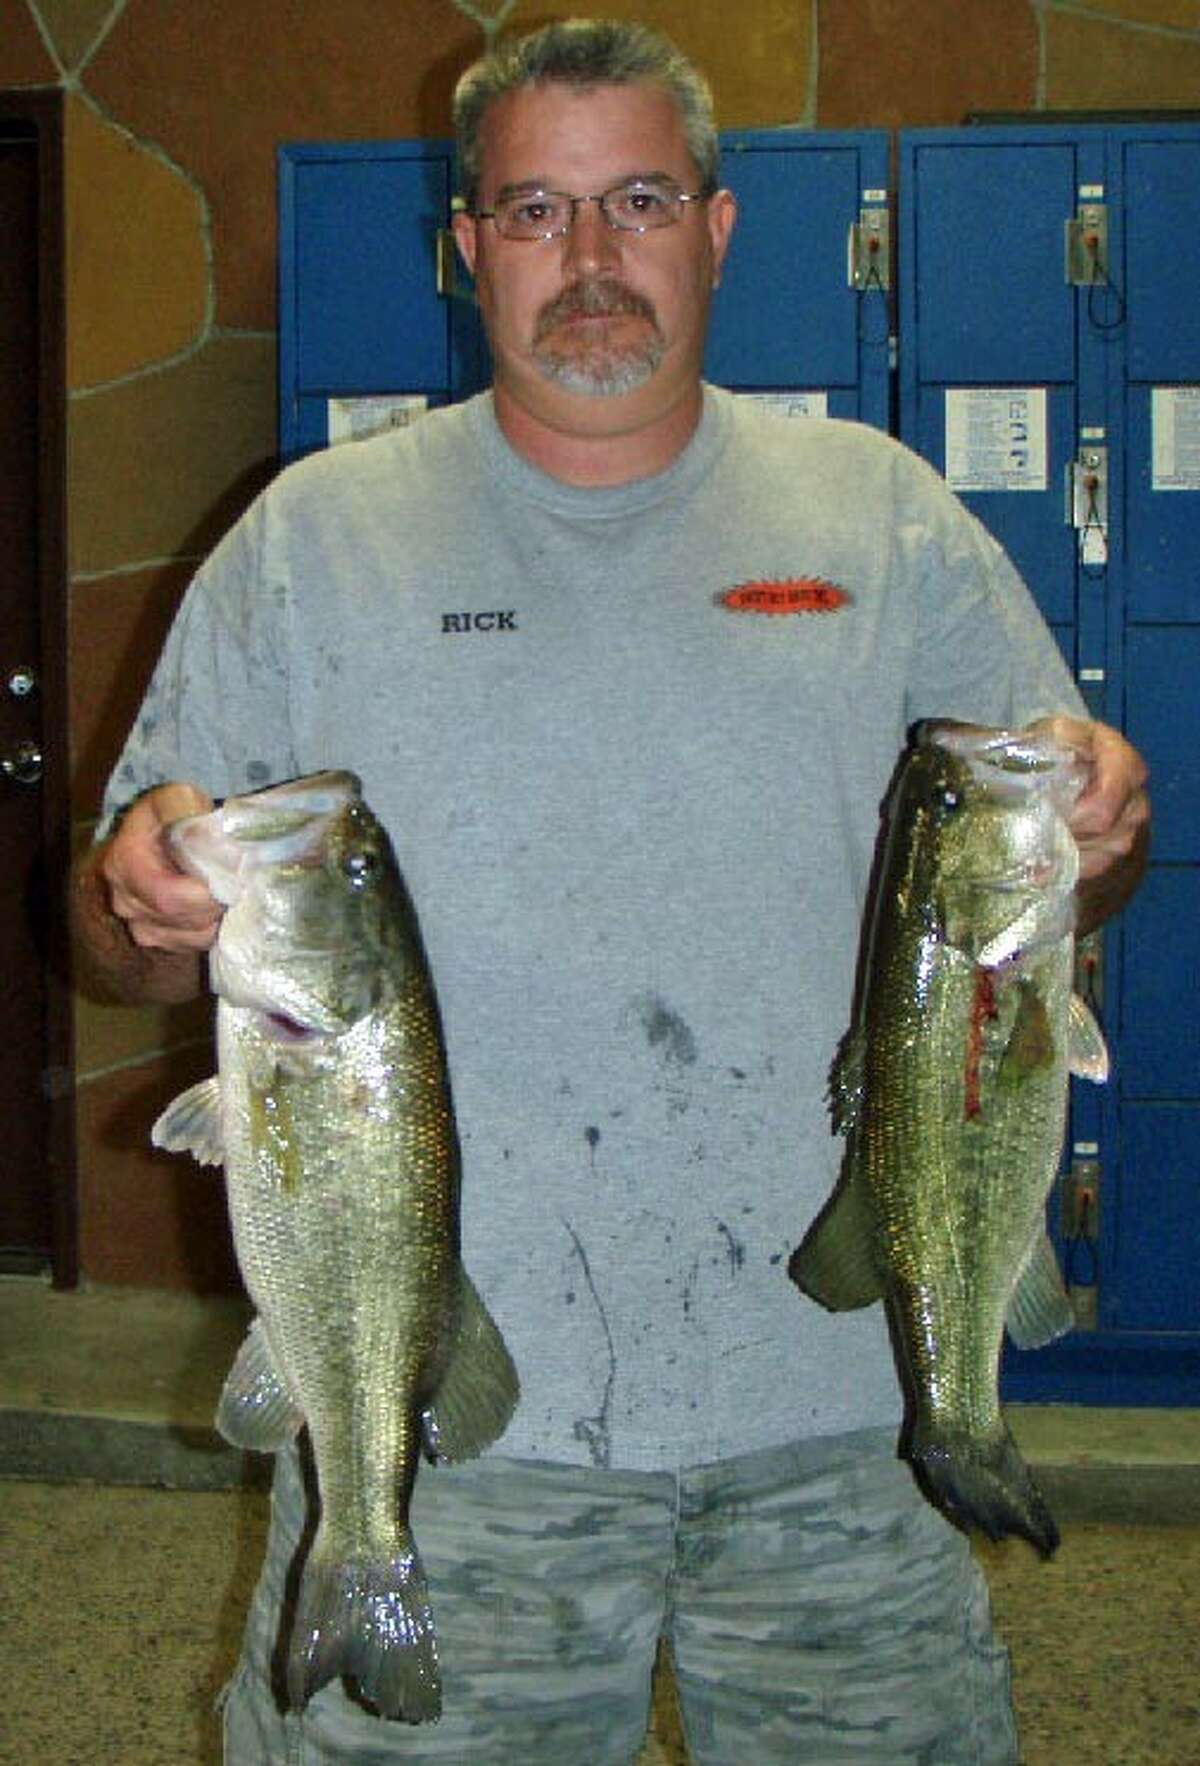 Charles Bebber and Rick Johnson finished third in the Conroe Bass Tuesday Night Tournament with a stringer weight of 10.76 pounds.